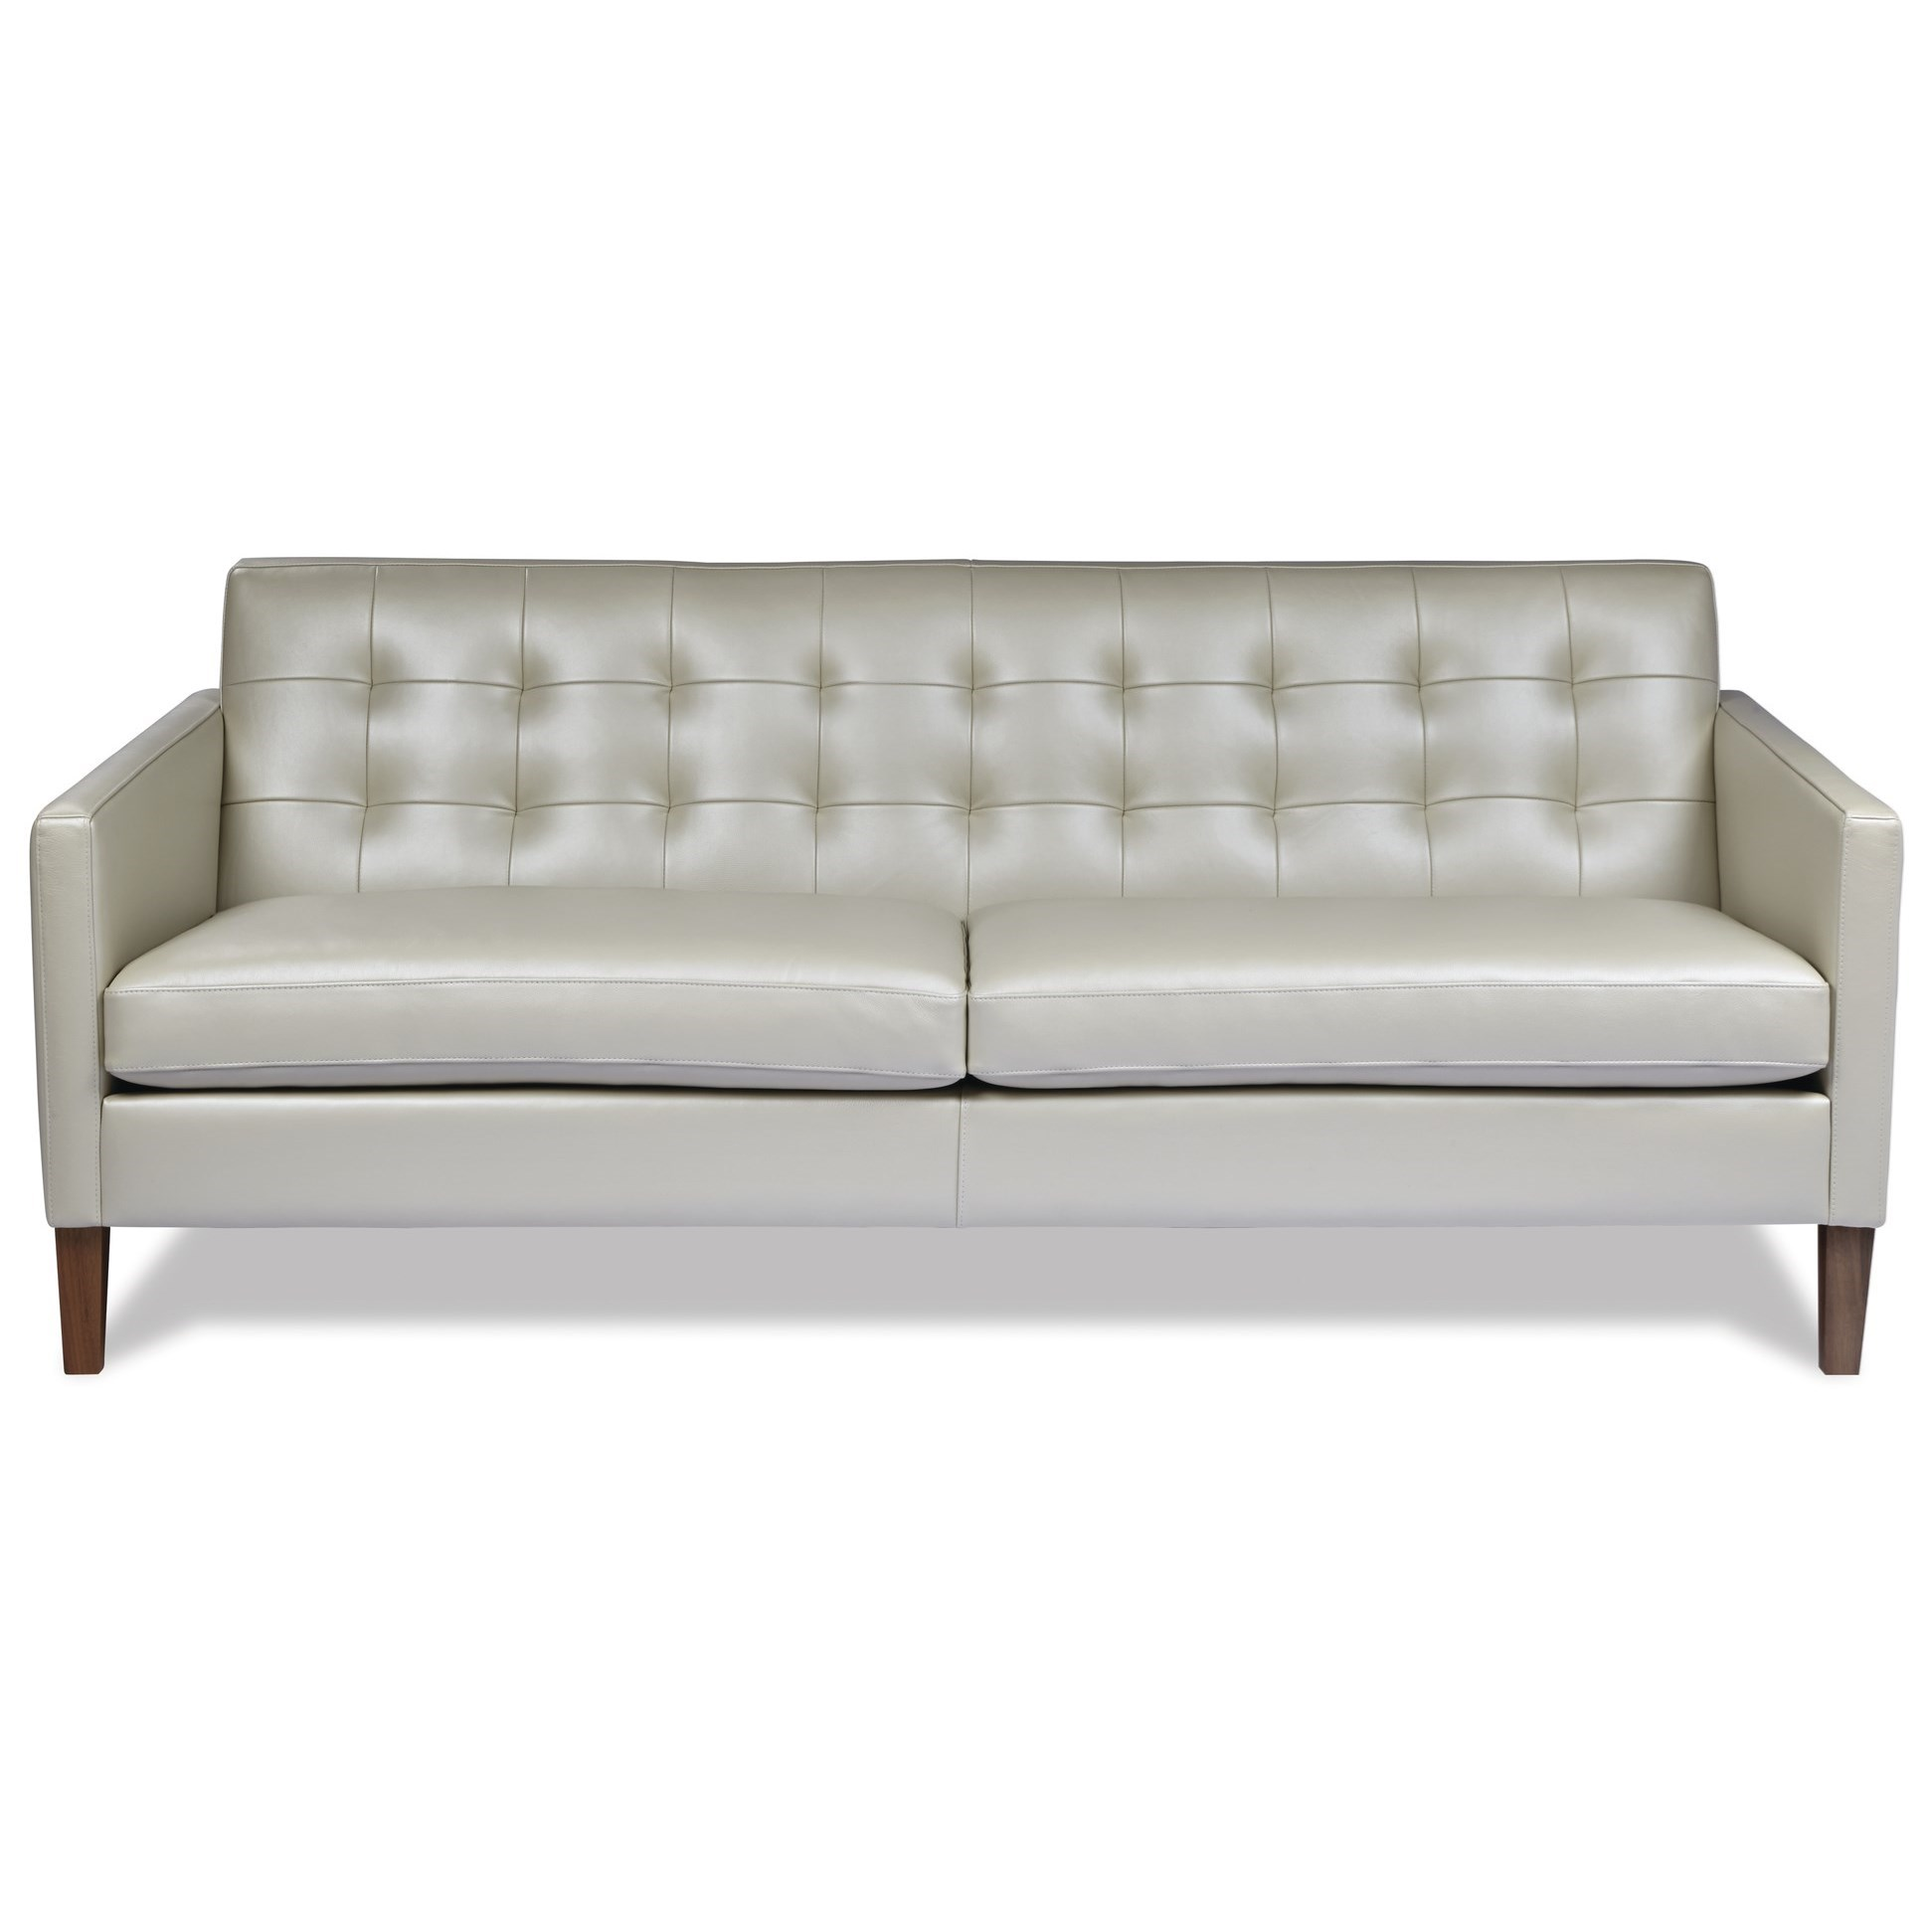 Ainsley Two-Seat Sofa by American Leather at Sprintz Furniture